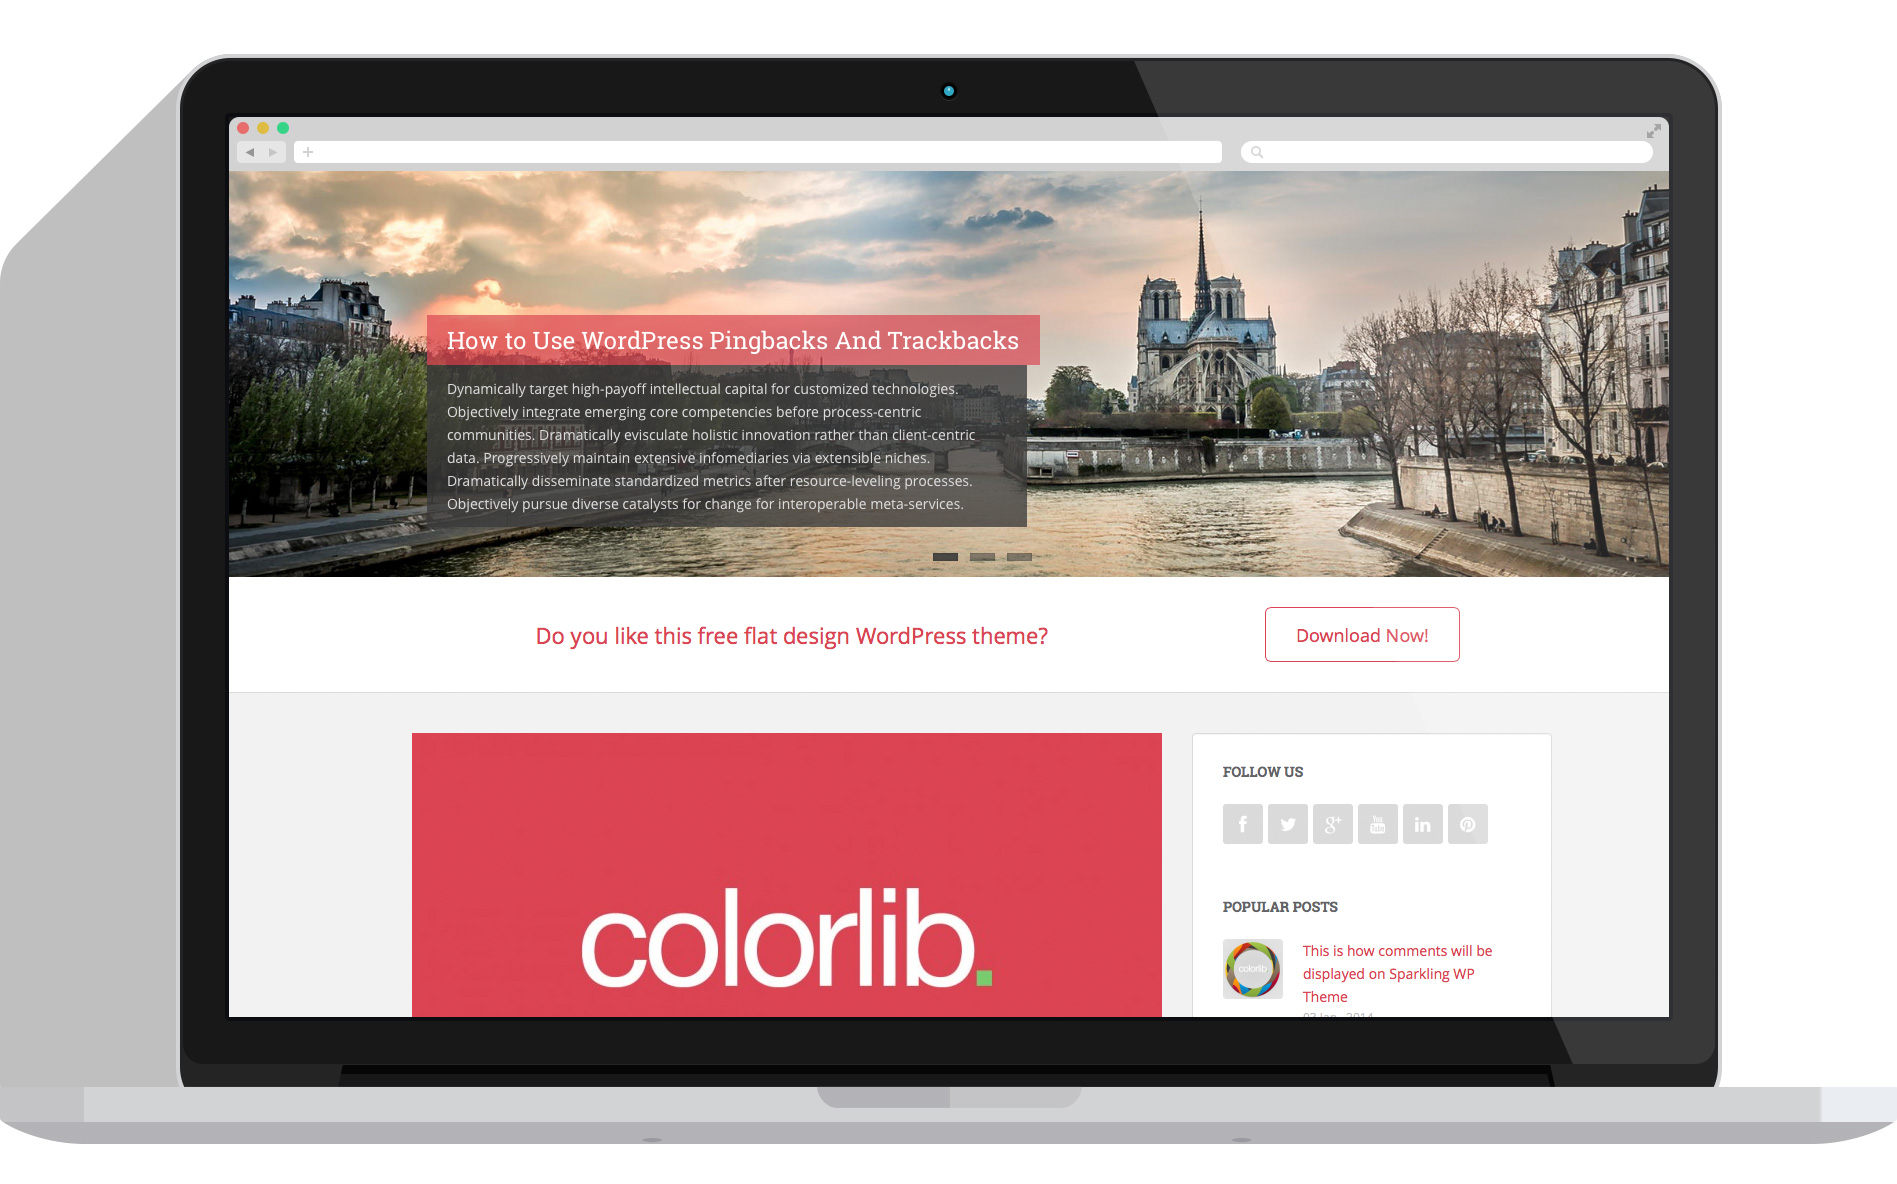 Sparkling Free Flat Design WordPress Theme Colorlib